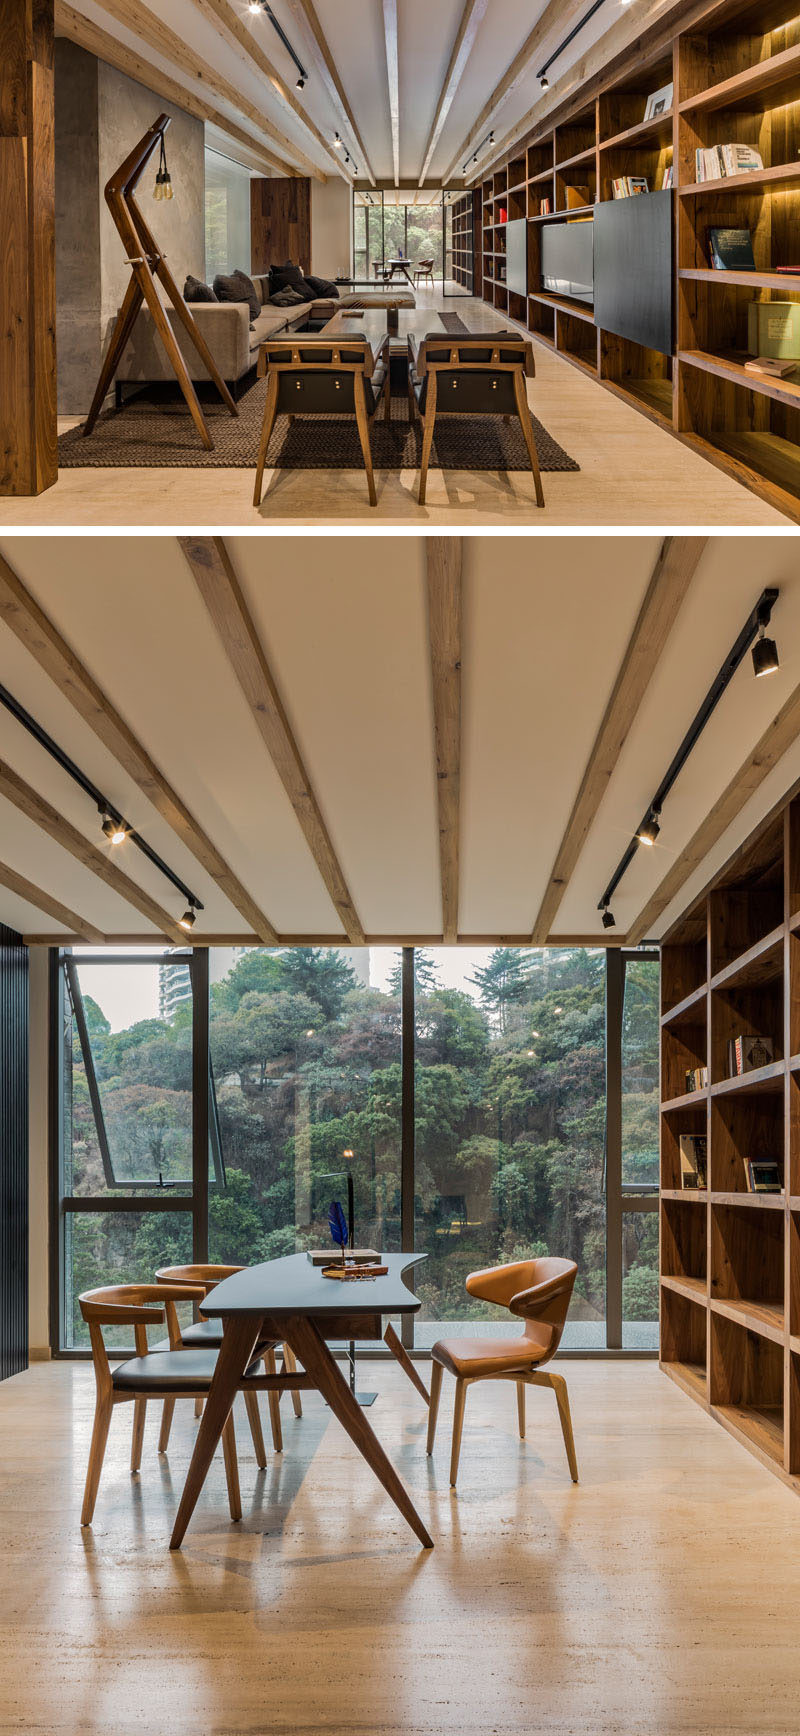 In this modern apartment, a wall of shelving with hidden lighting runs from the living room, right through to the home office, with only a door way separating the two. In the home office, large floor-to-ceiling windows provide tree views. #Shelving #LivingRoom #HomeOffice